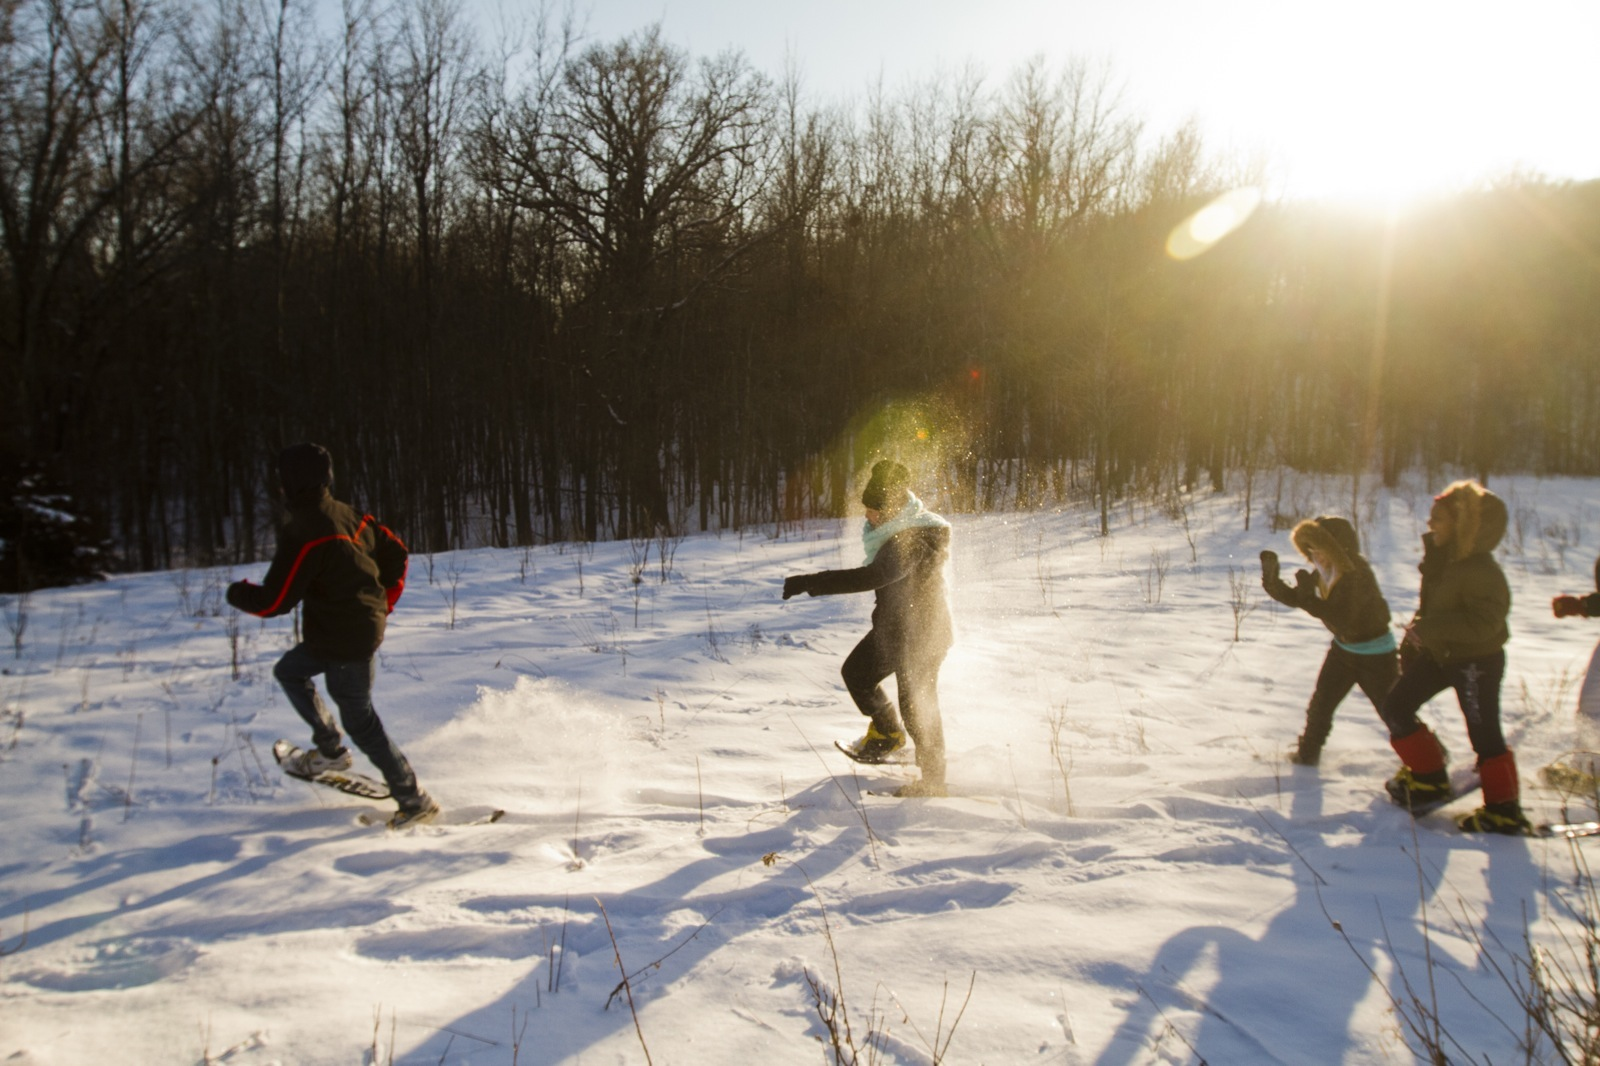 Four young people wearing snowshoes race across a snowy landscape under a sunny sky.